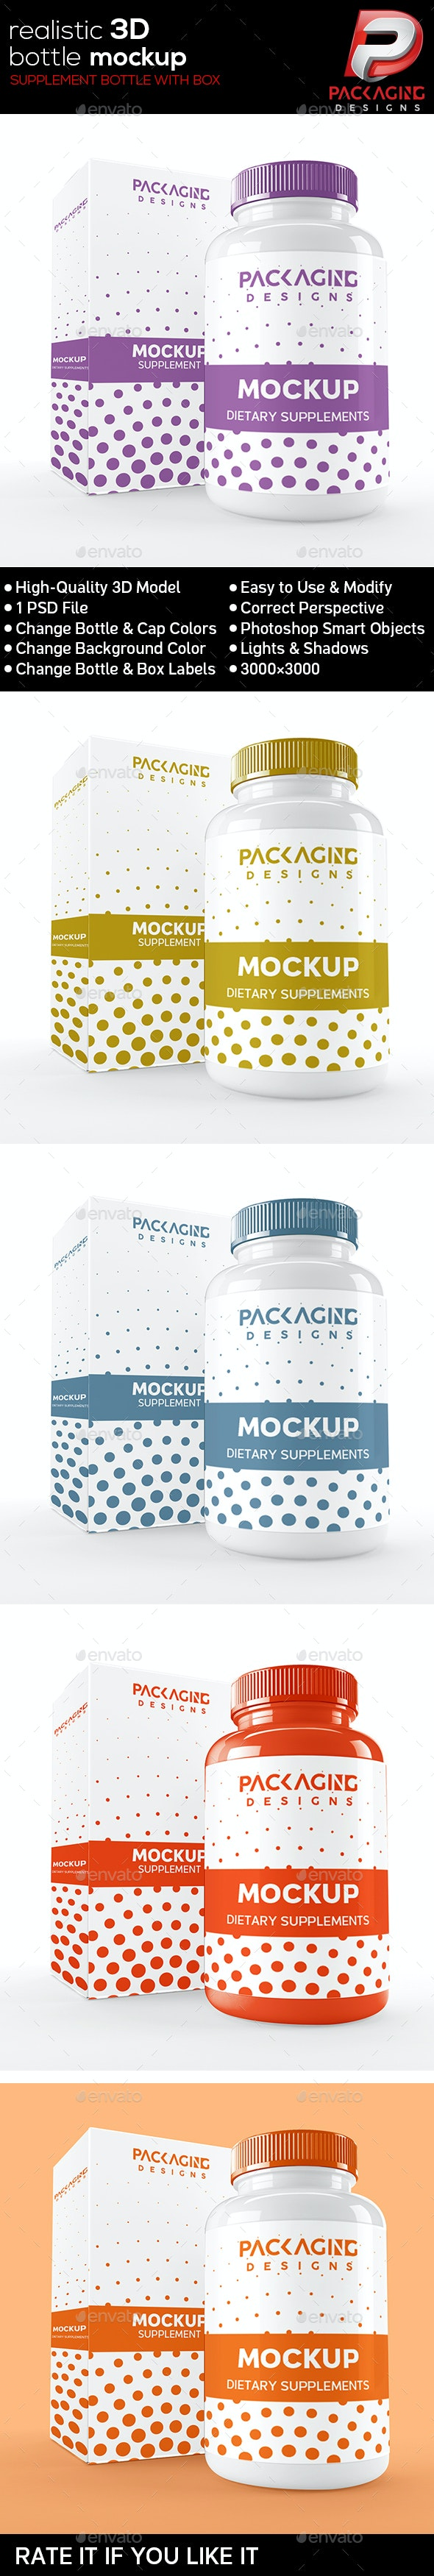 Realistic 3D Supplement Bottle with Box  Mock-Up-1 - Product Mock-Ups Graphics